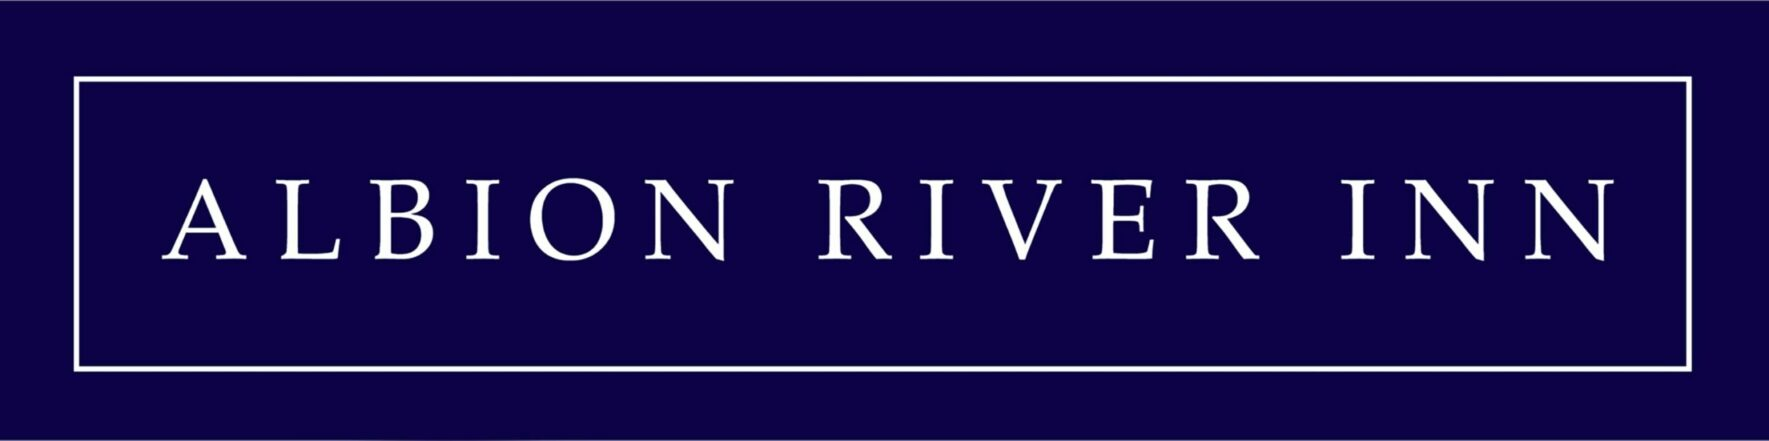 Privacy Policy, Albion River Inn